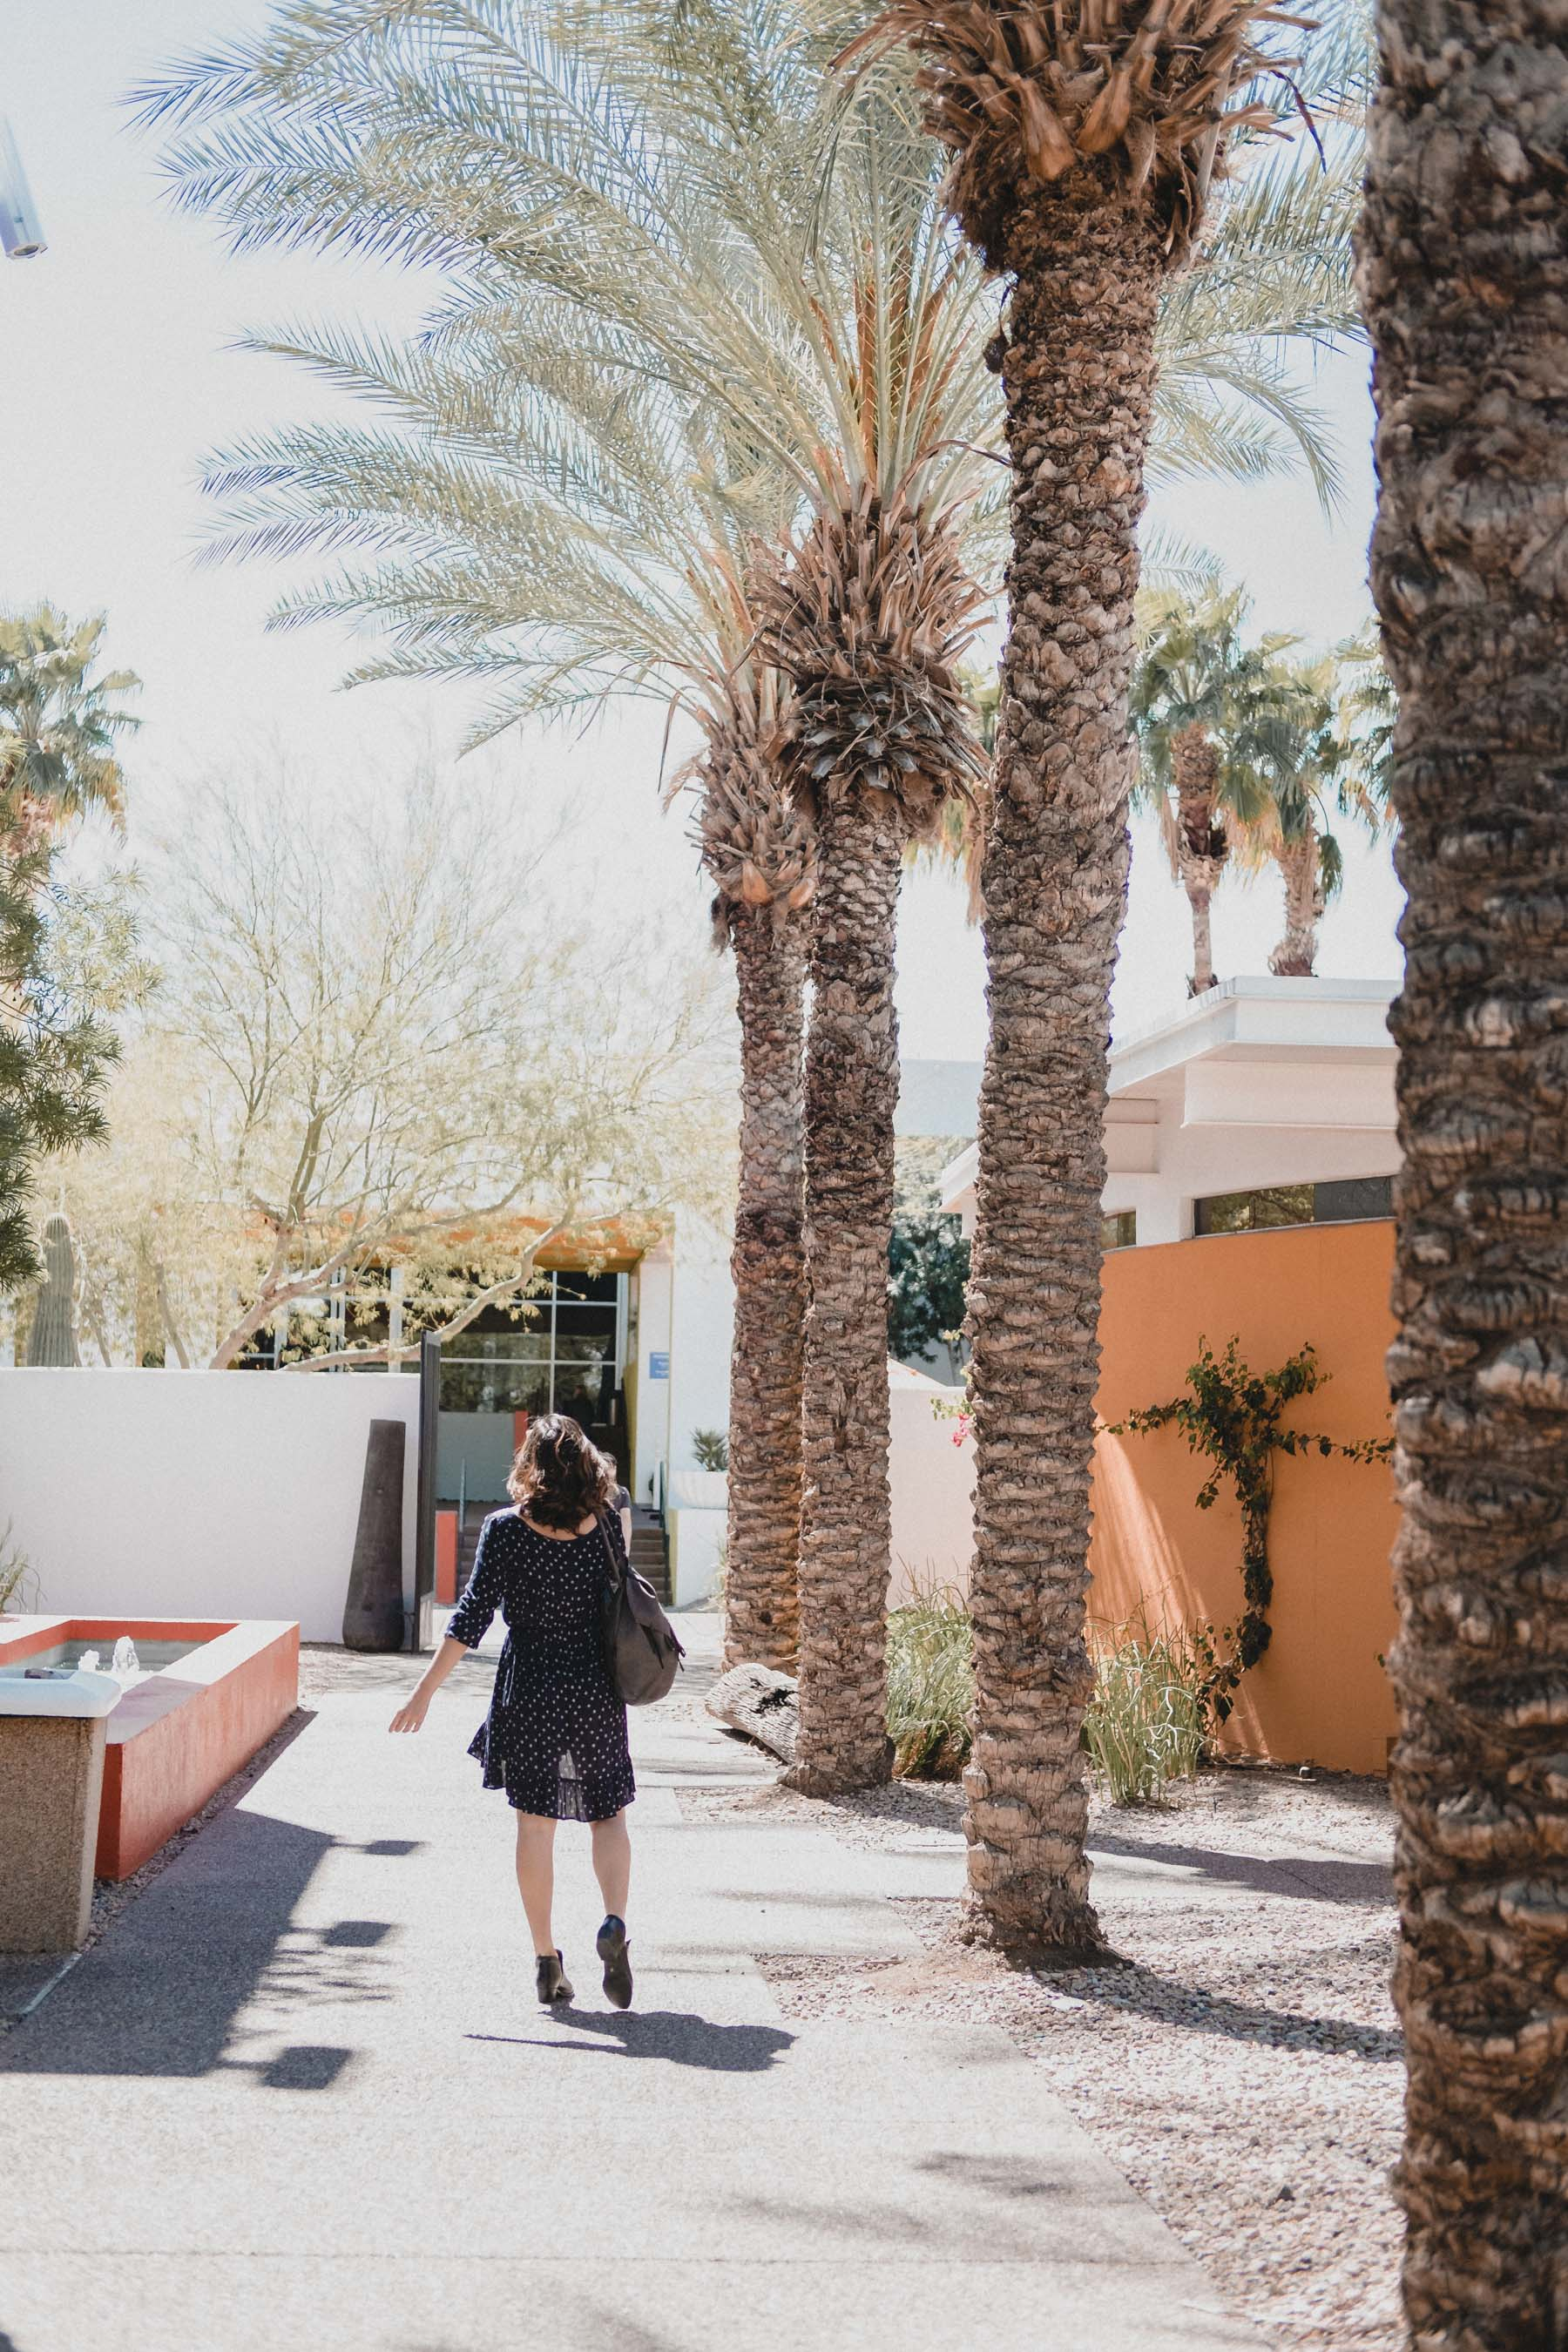 Rachel Off Duty: The Saguaro Hotel